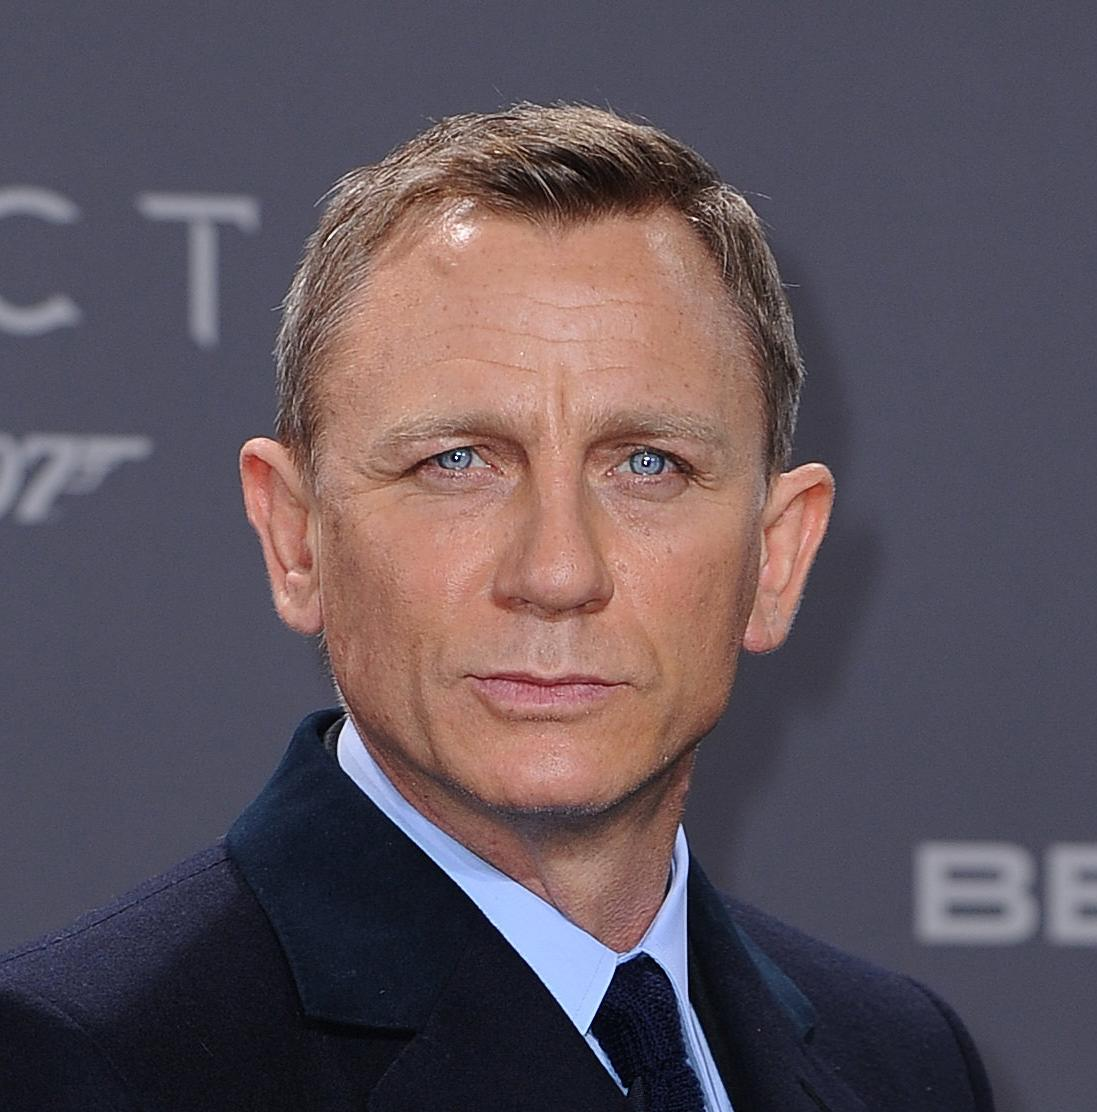 'Purity' Drama Starring Daniel Craig From Scott Rudin Eyes Series Order